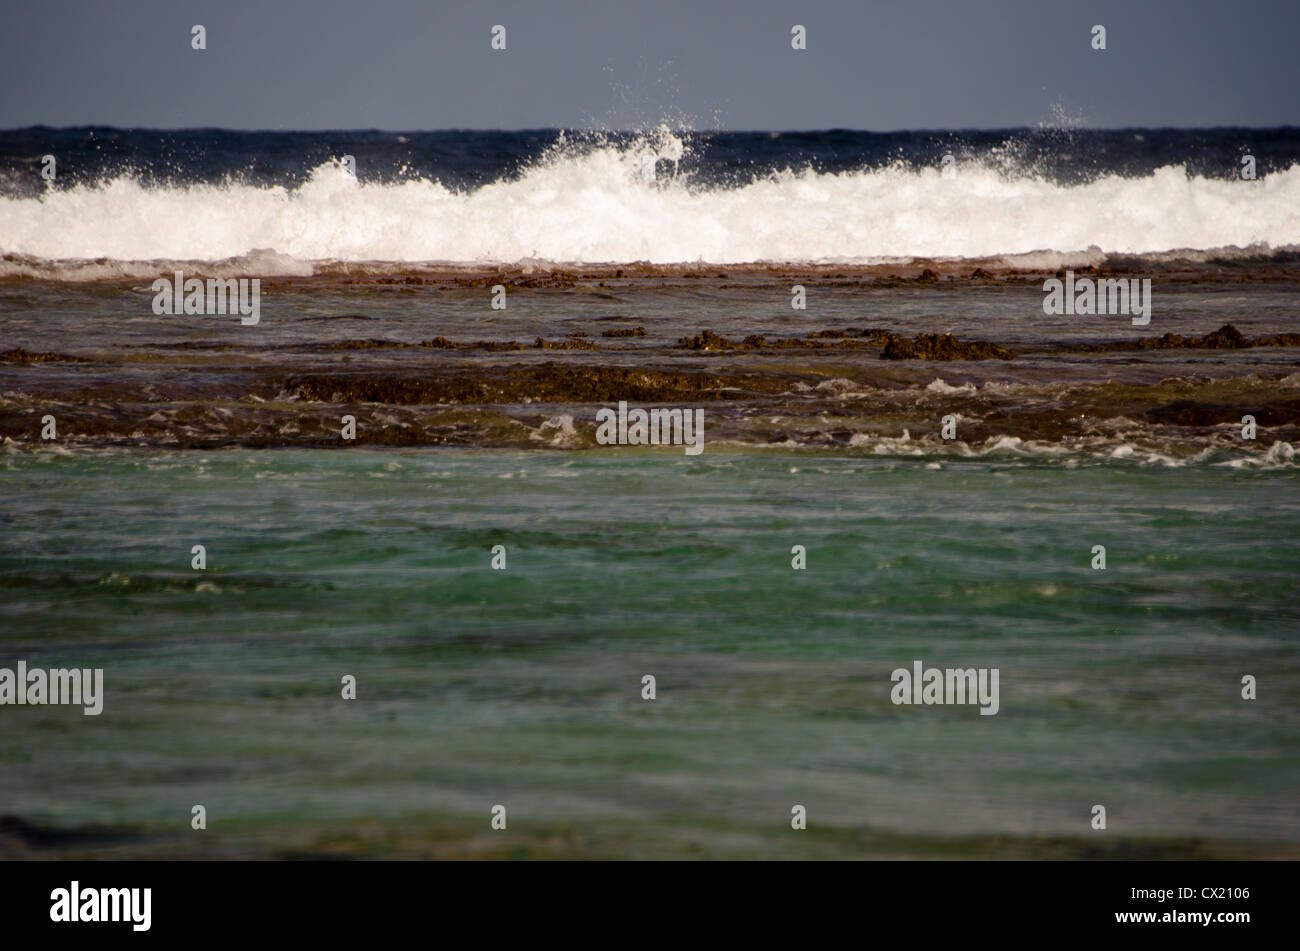 The South Pacific Ocean crashes upon the reef in Rangiroa, French Polynesia - Stock Image